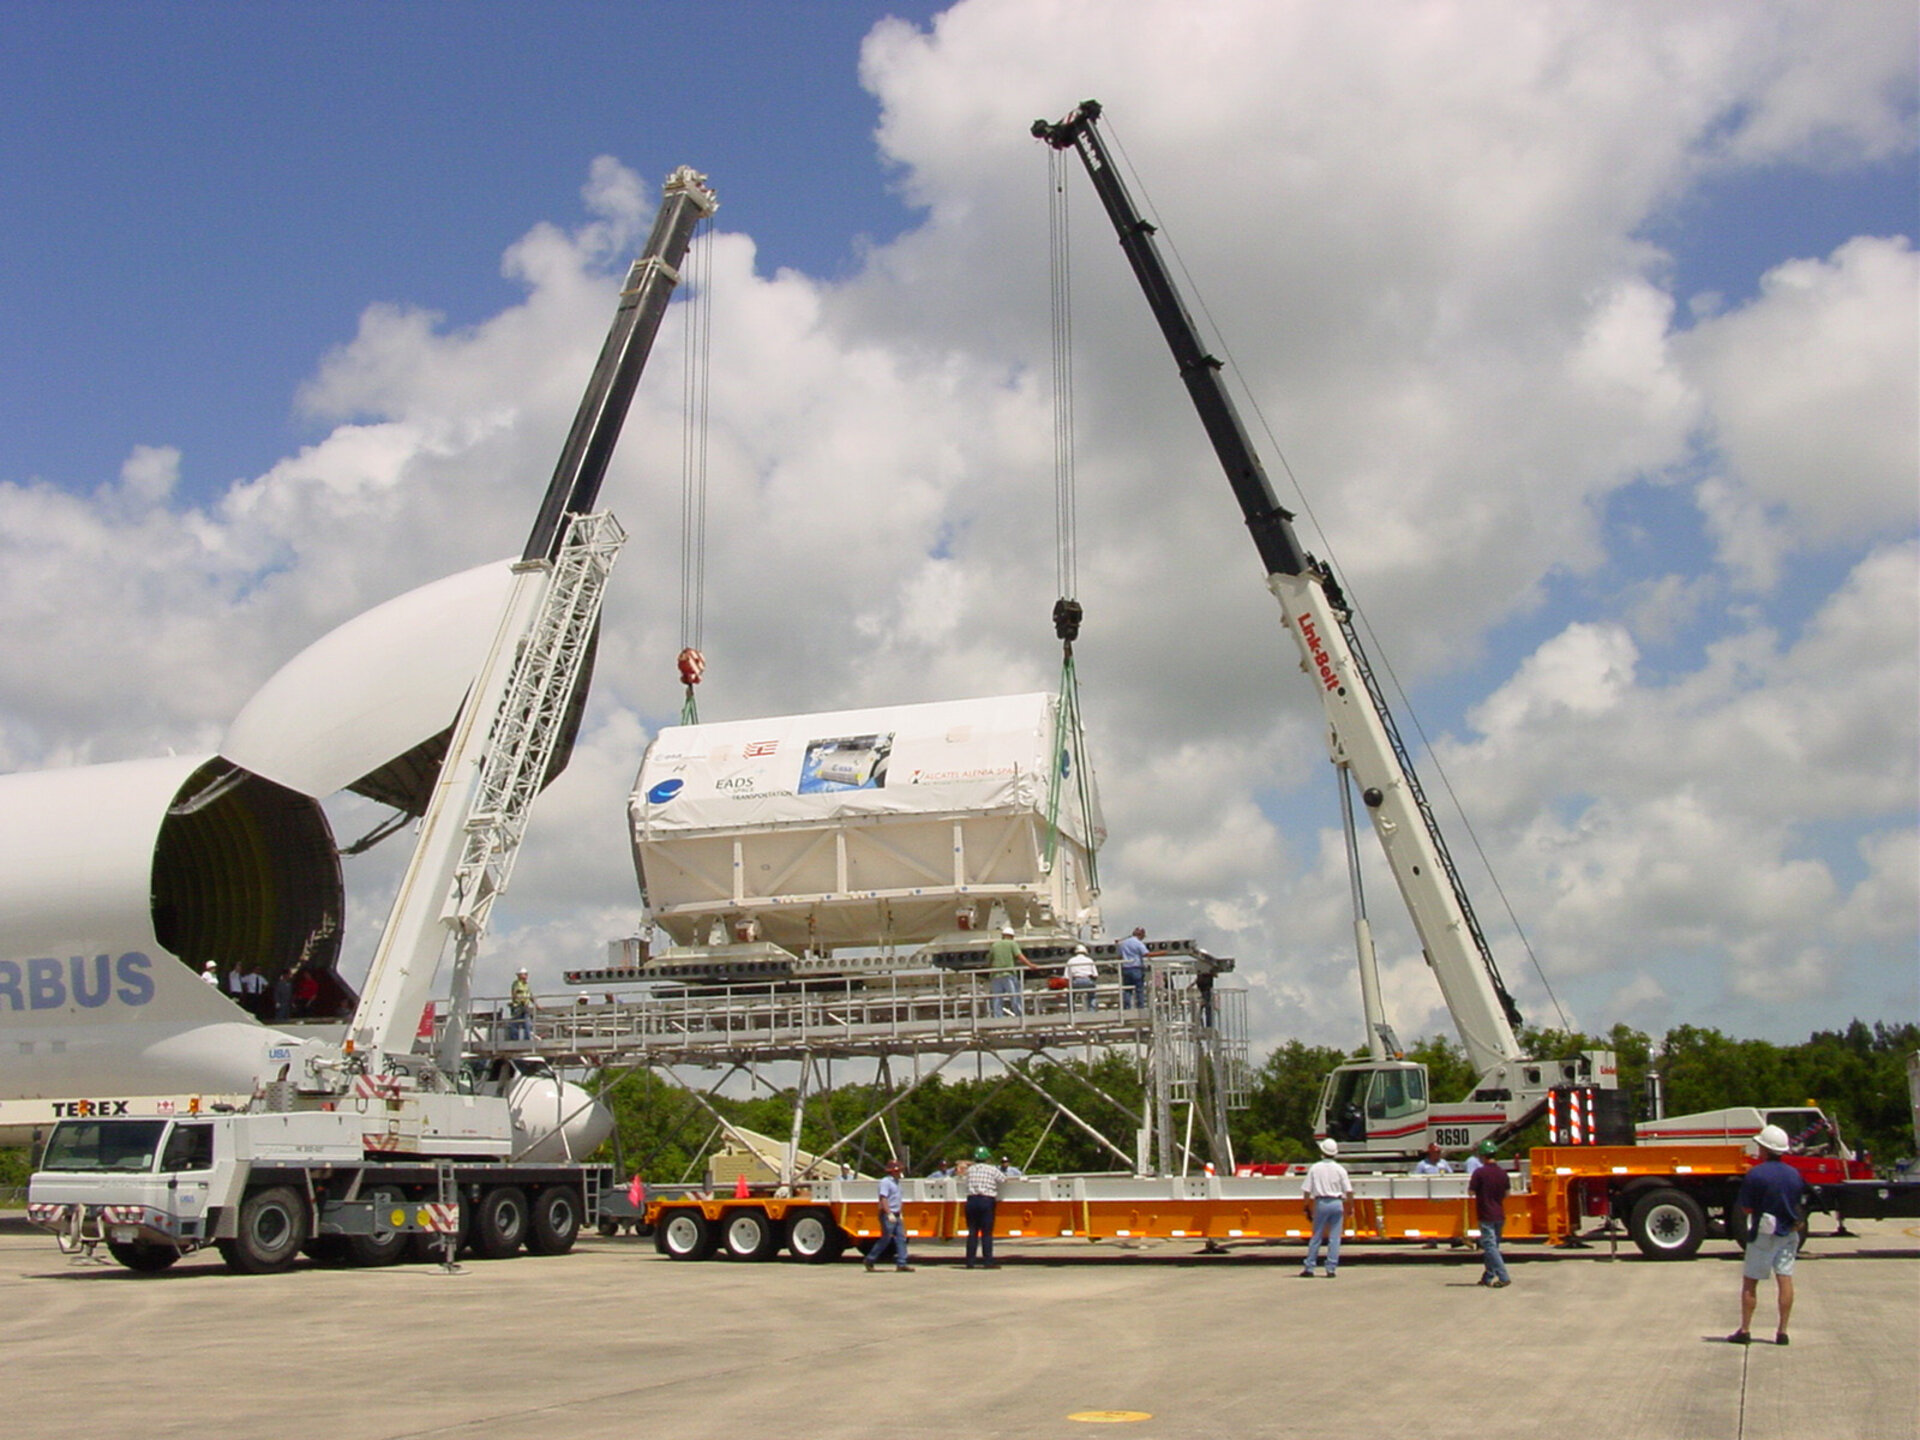 Two cranes lower the Columbus laboratory toward a flatbed truck